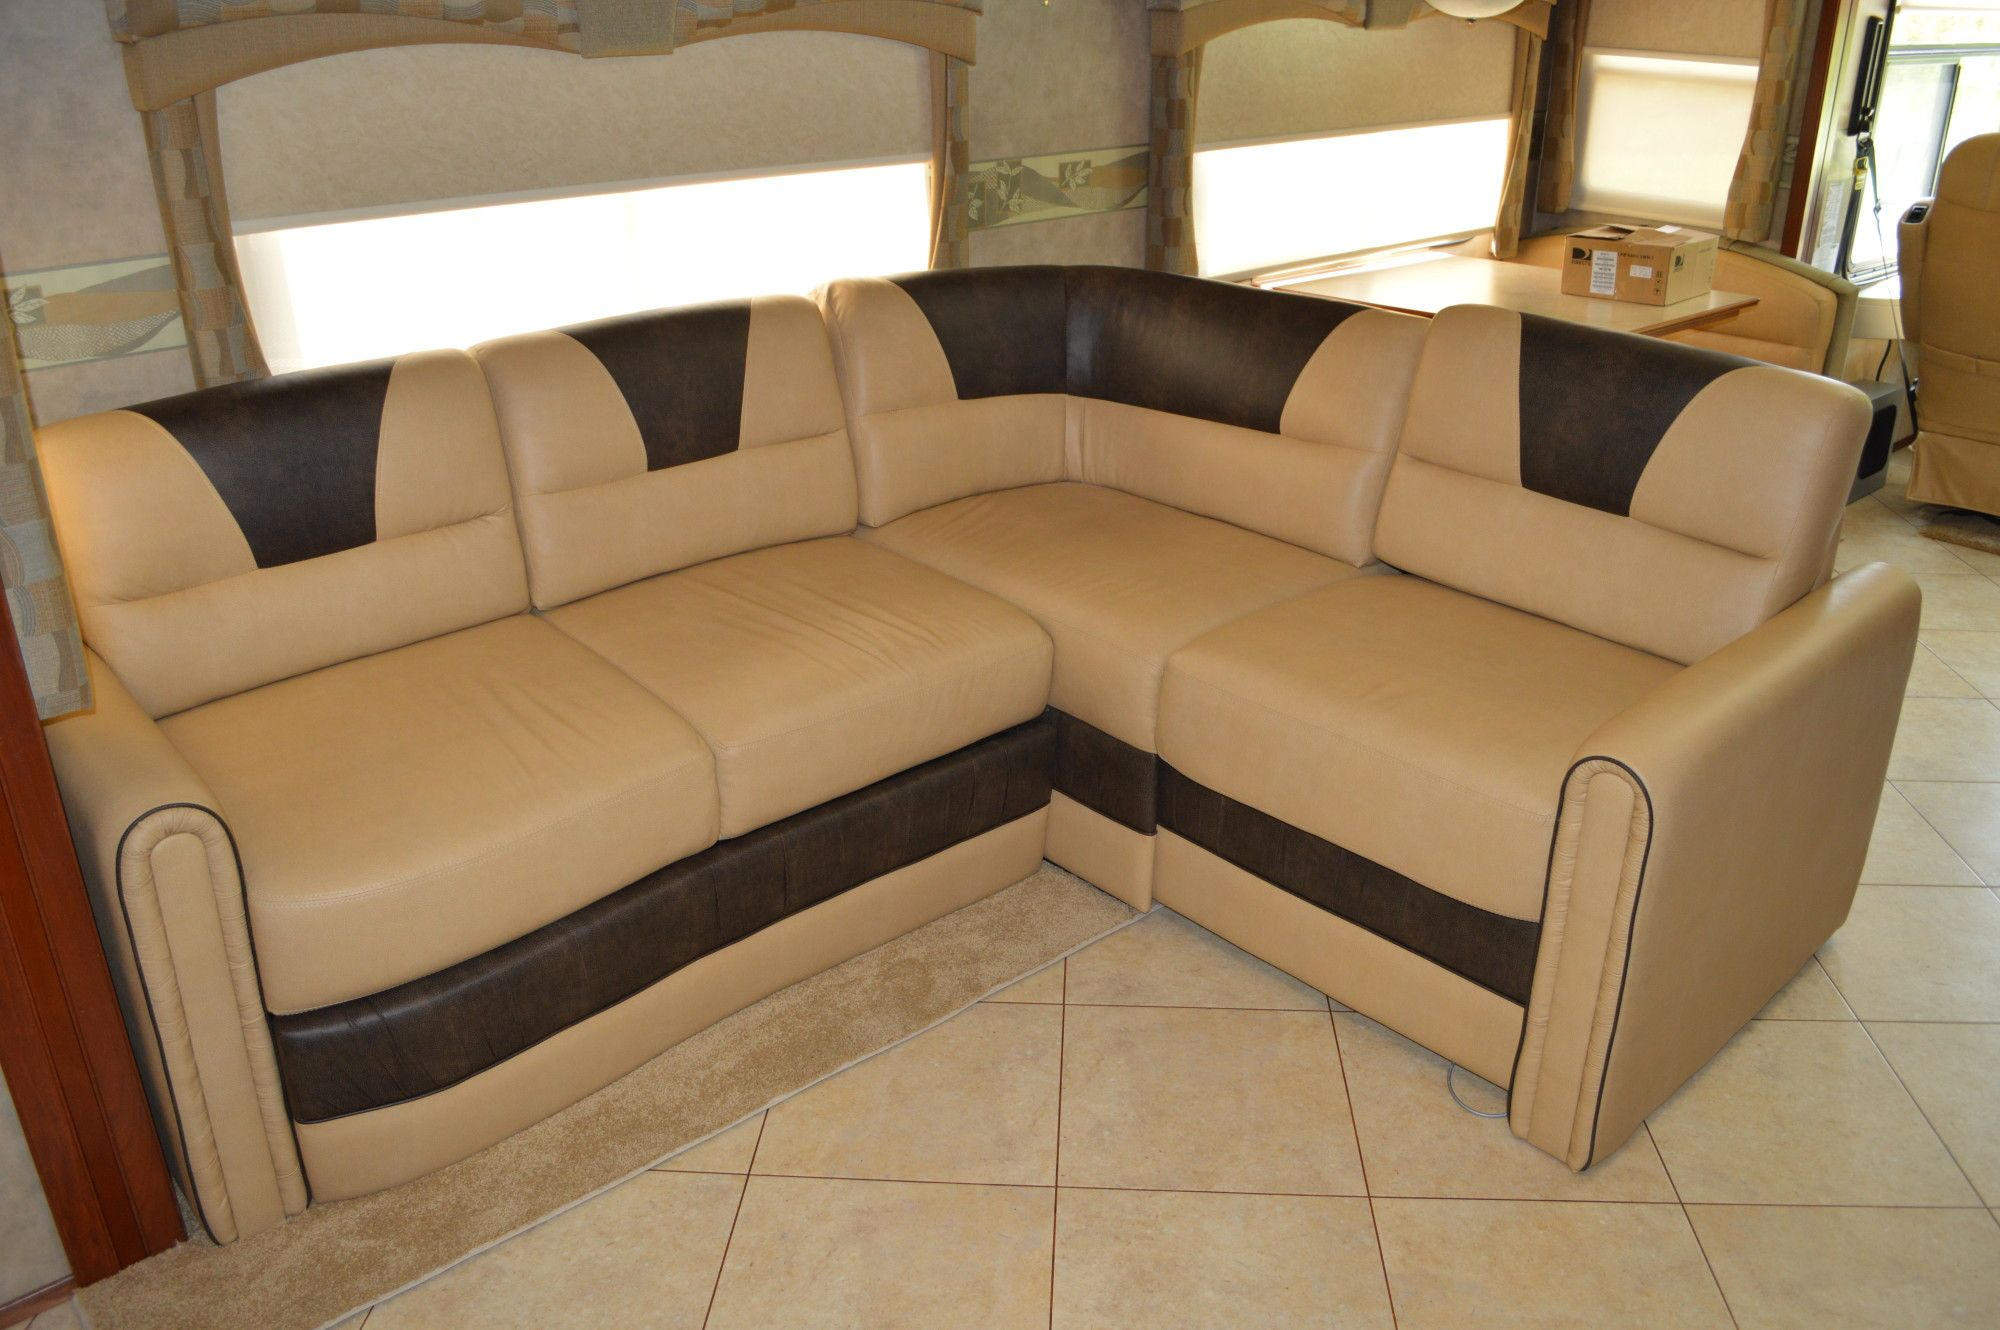 rvers rv guide complete upgrades furniture replacement couches couch content